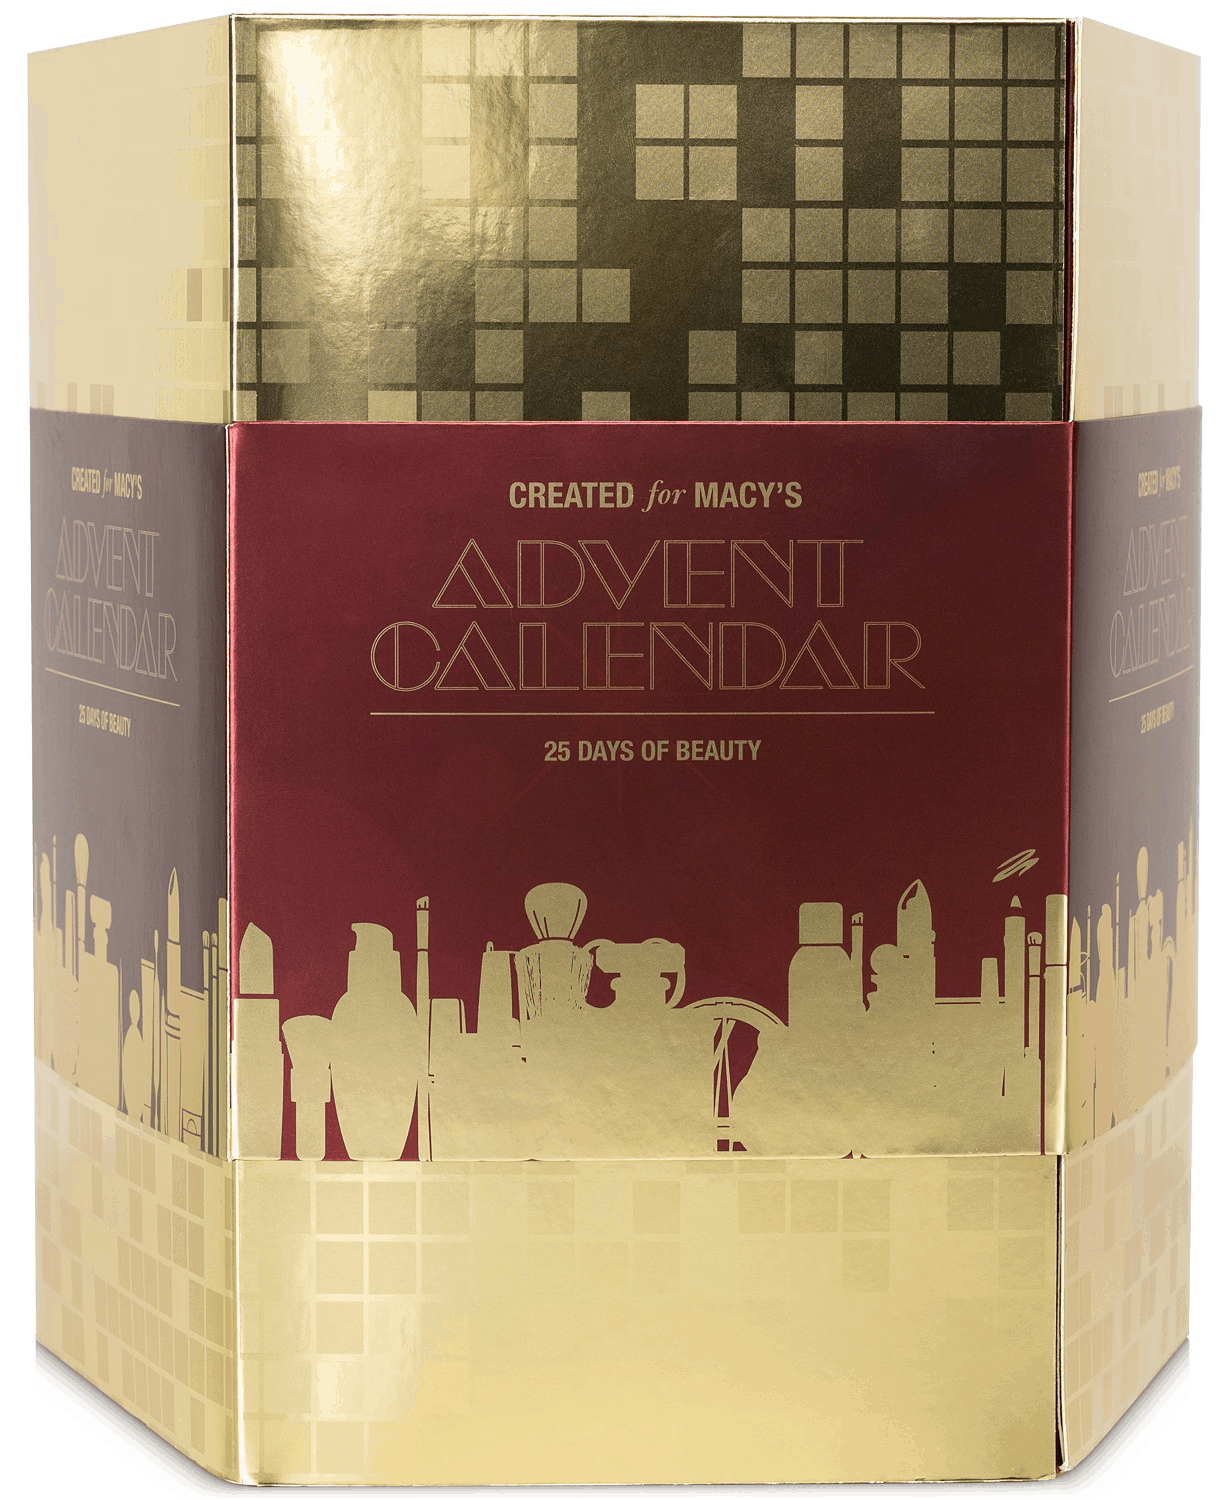 2019 Macy's Beauty Advent Calendar Cyber Monday Deal: 45% Off!